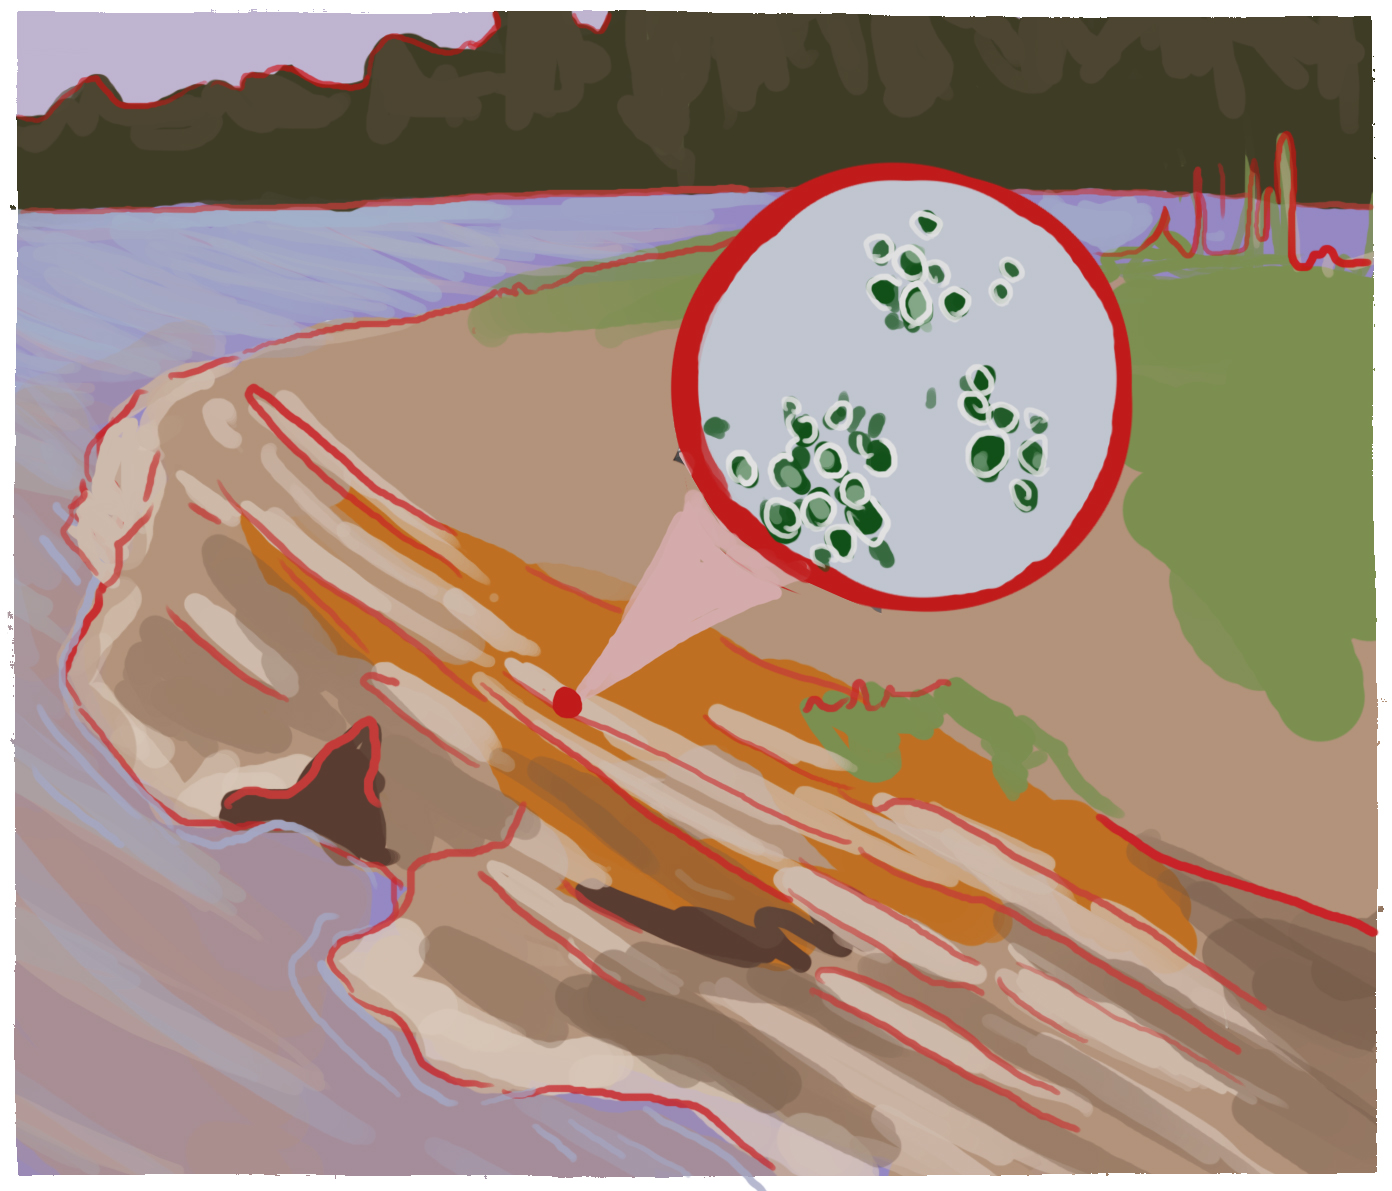 Concept 3: the location the article describes, with a close-up of the bacteria